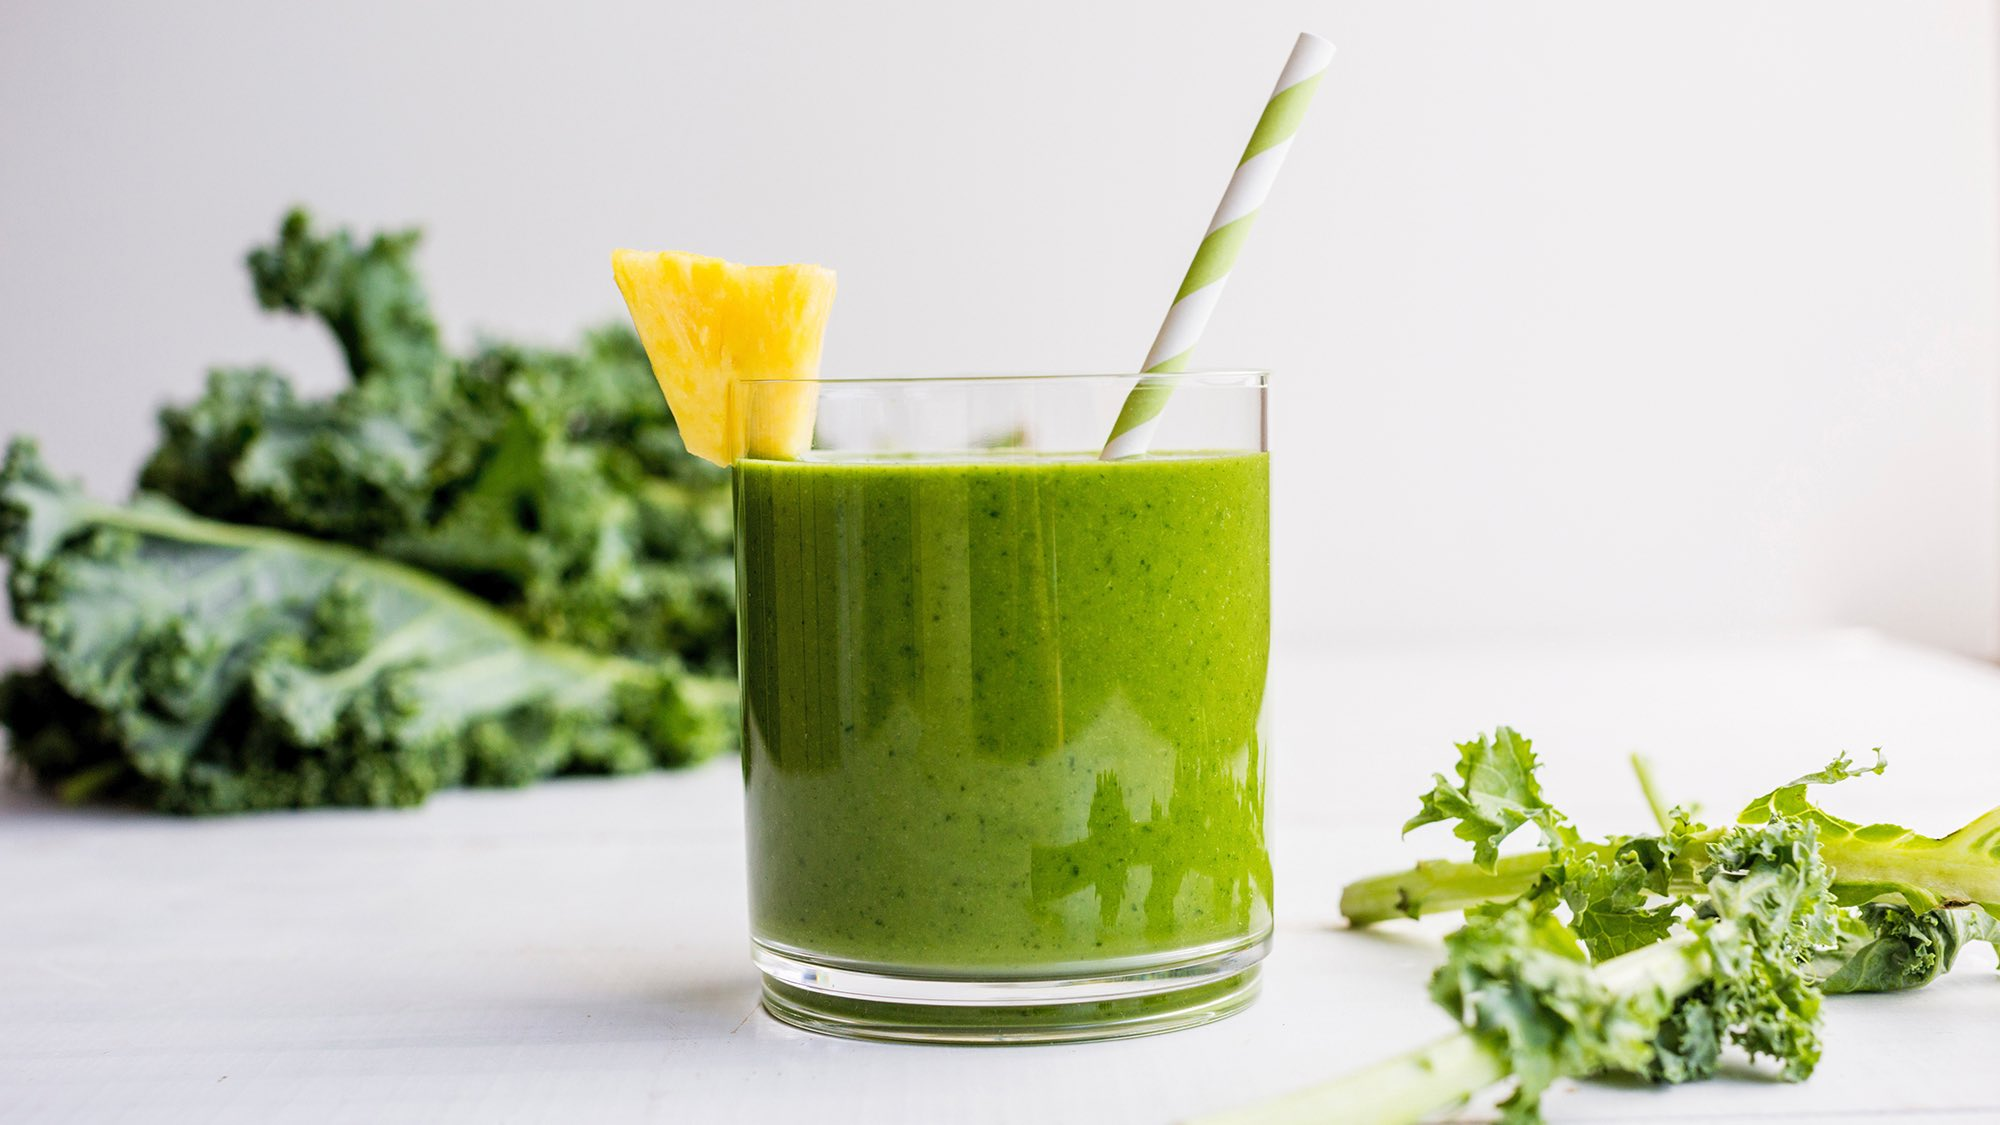 McCormick Matcha Coconut Kale Smoothie